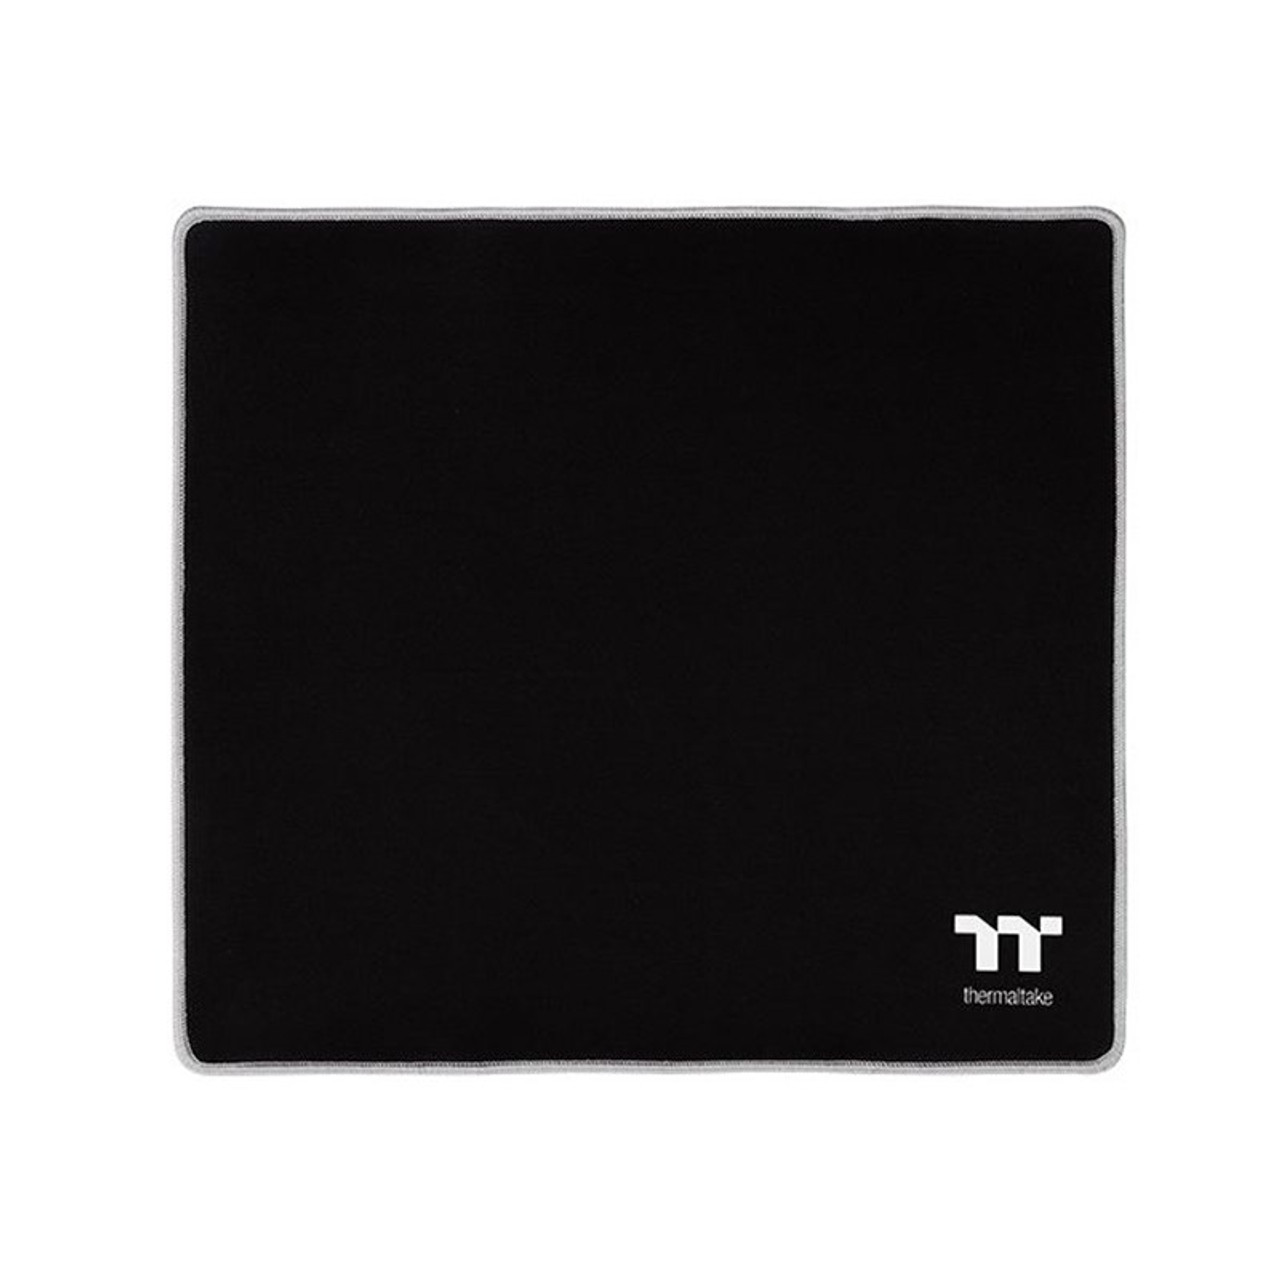 Image for Thermaltake M300 Medium Gaming Mouse Pad CX Computer Superstore